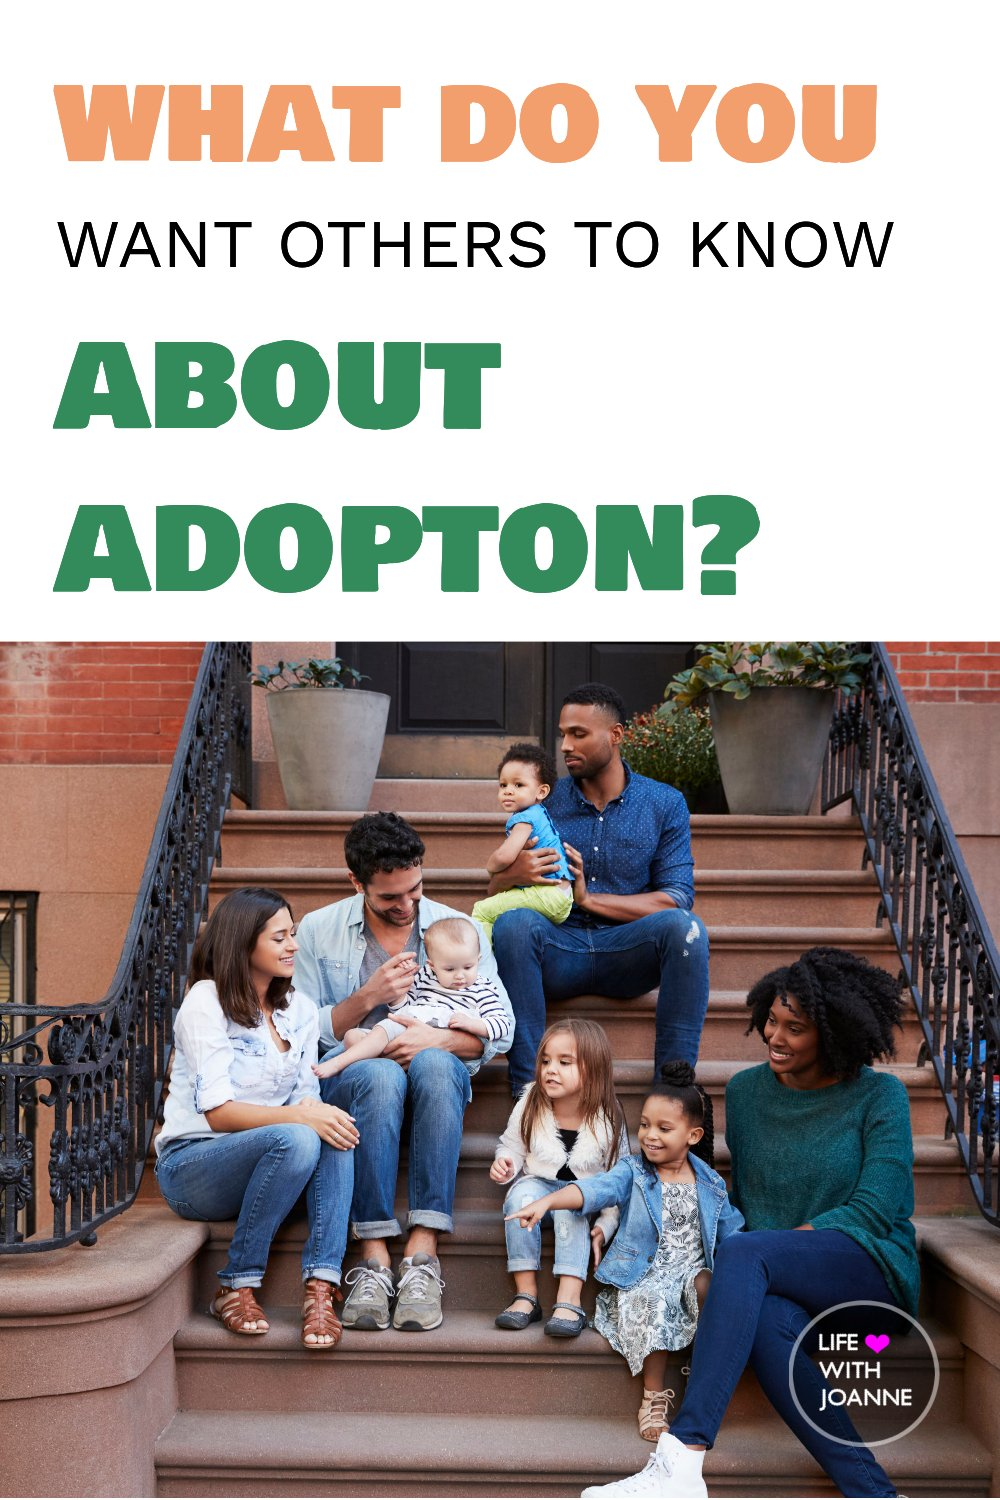 What you want others to know about adoption